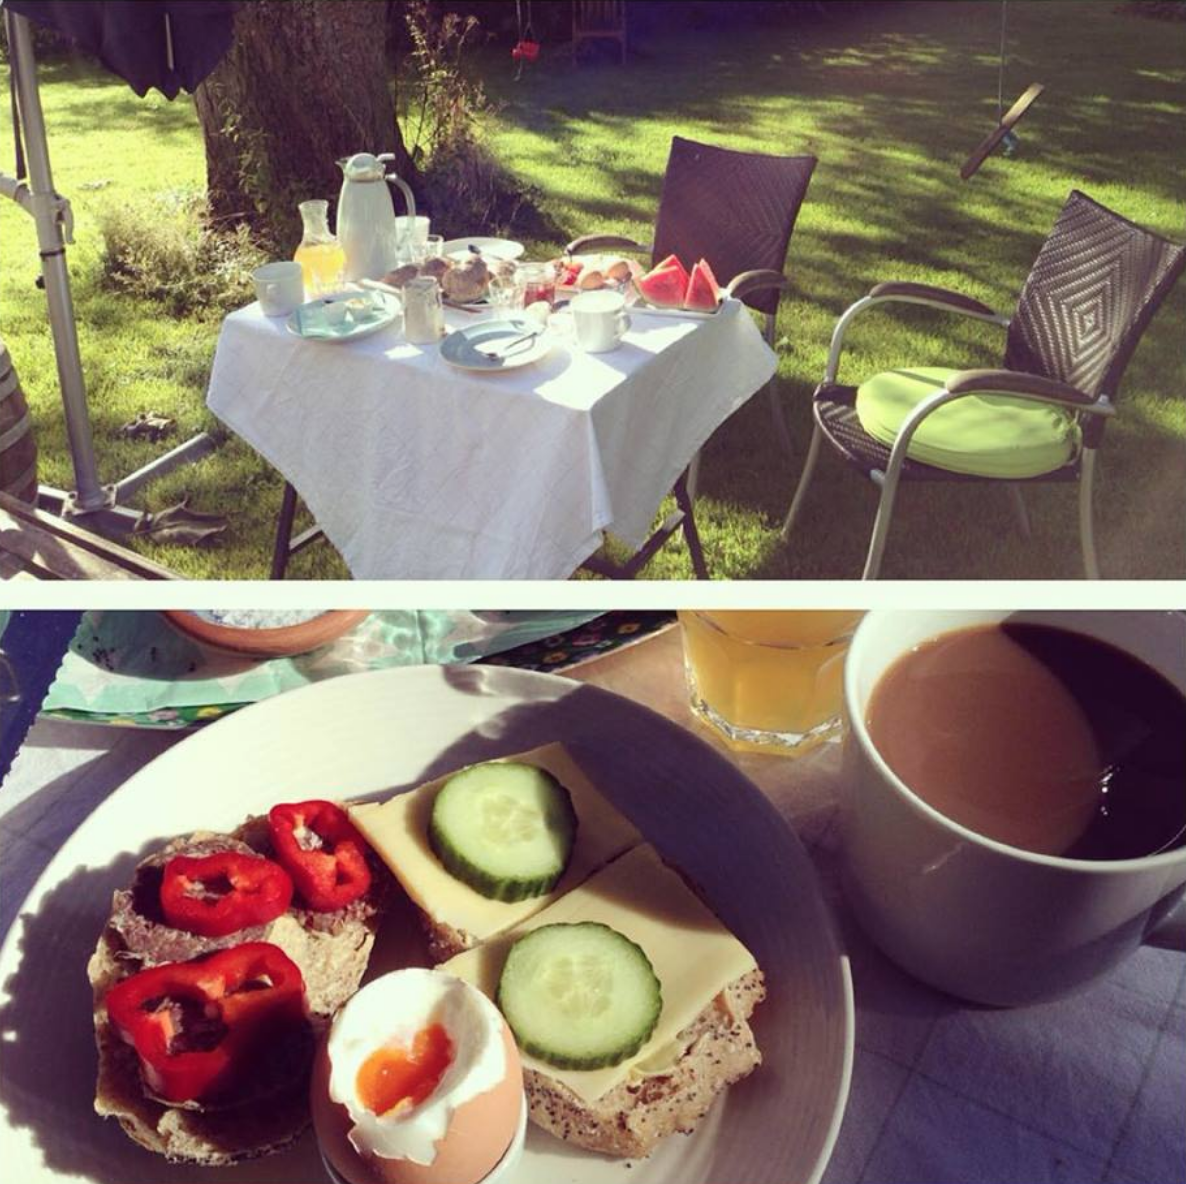 Morgenmad i haven